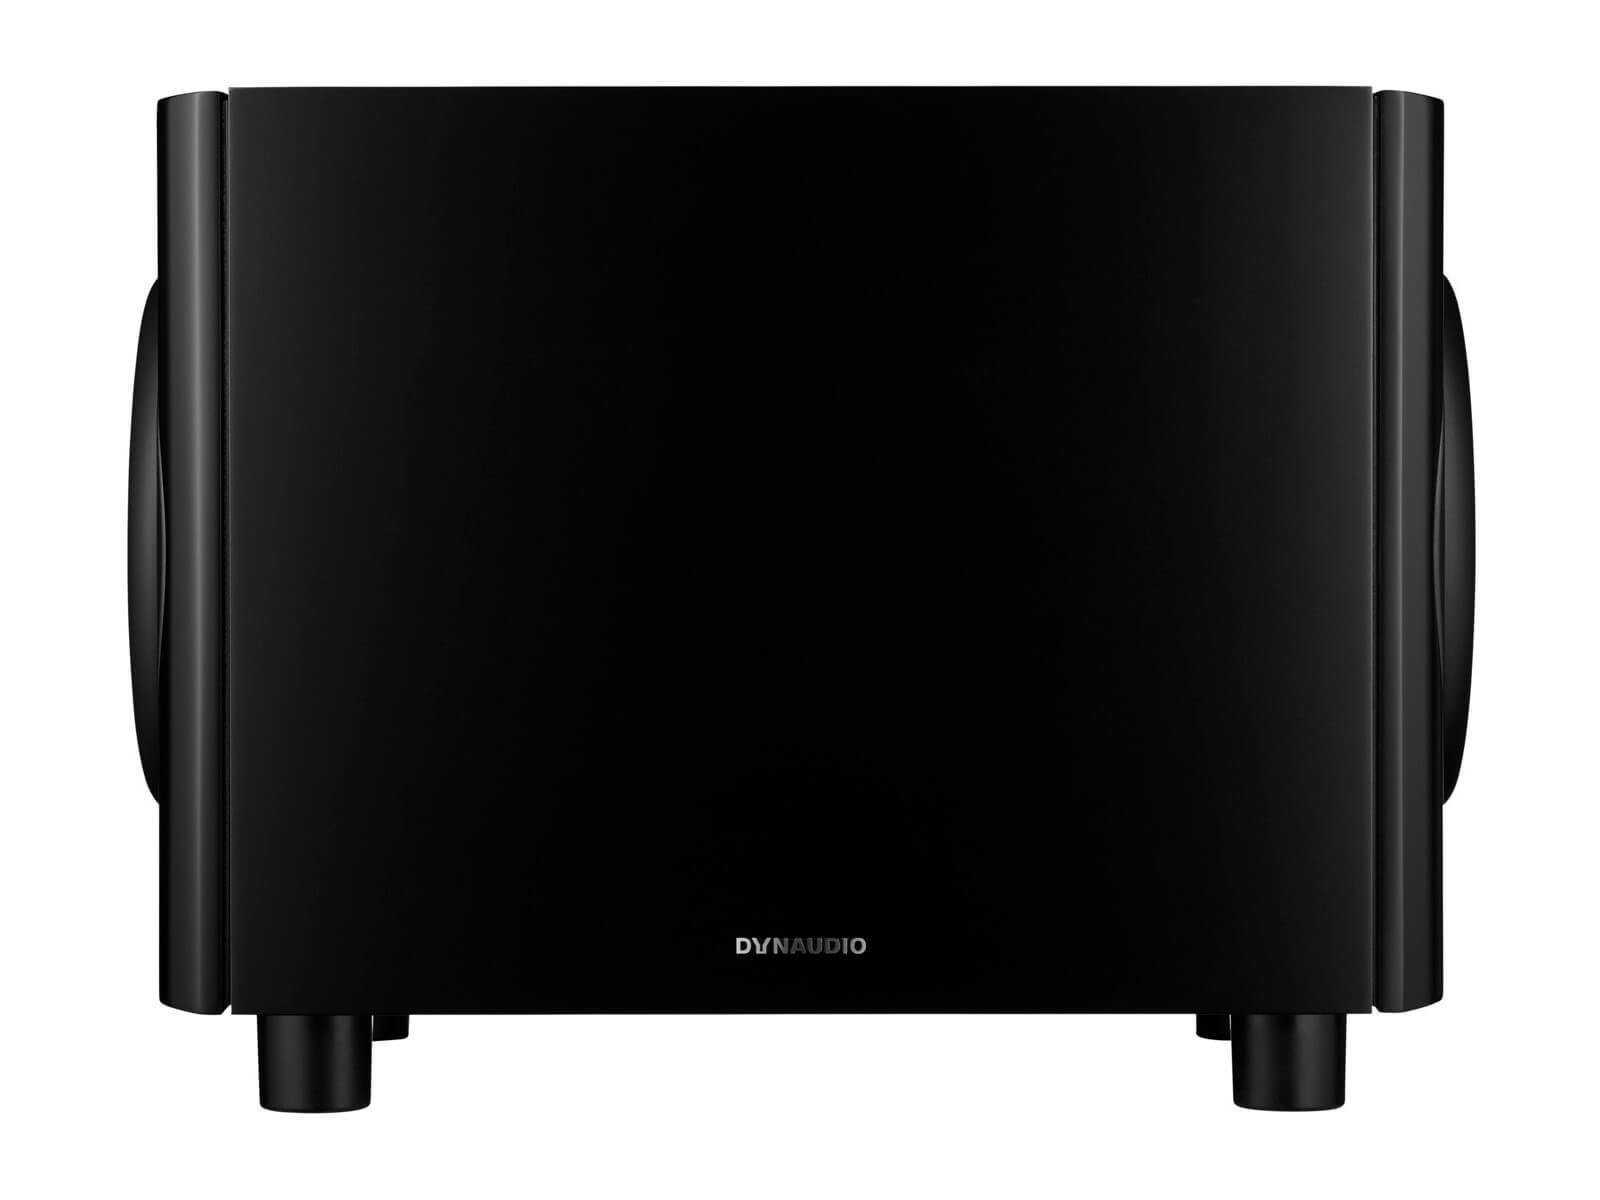 Dynaudio Sub 6 - Home Audio Subwoofer - Black Side